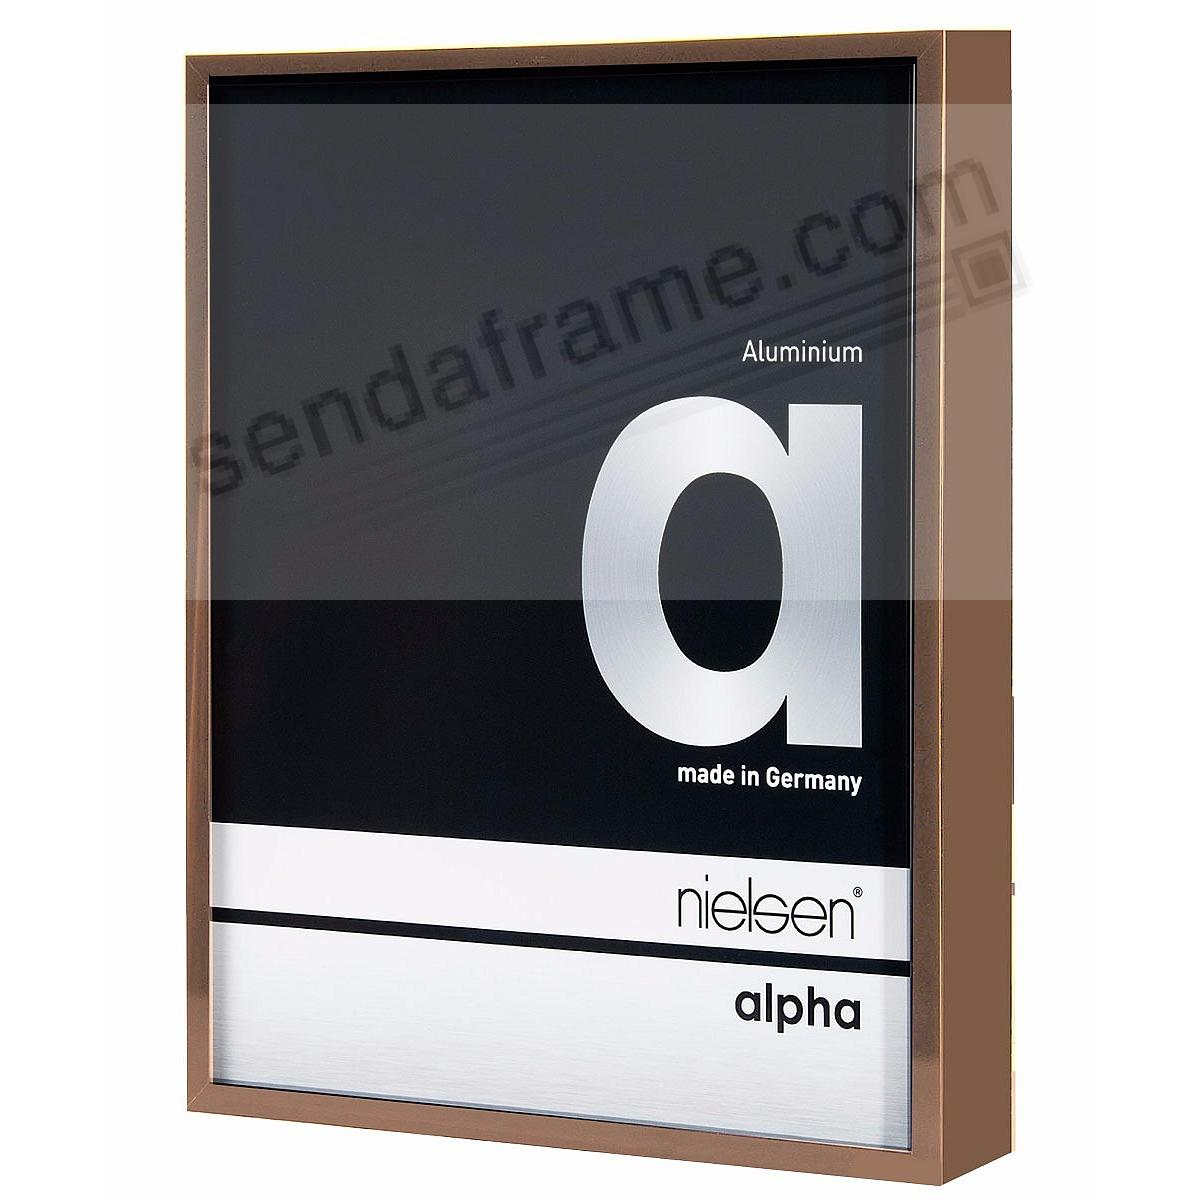 ALPHA Metallic Brushed-Bronze 5x7 frame by Nielsen®